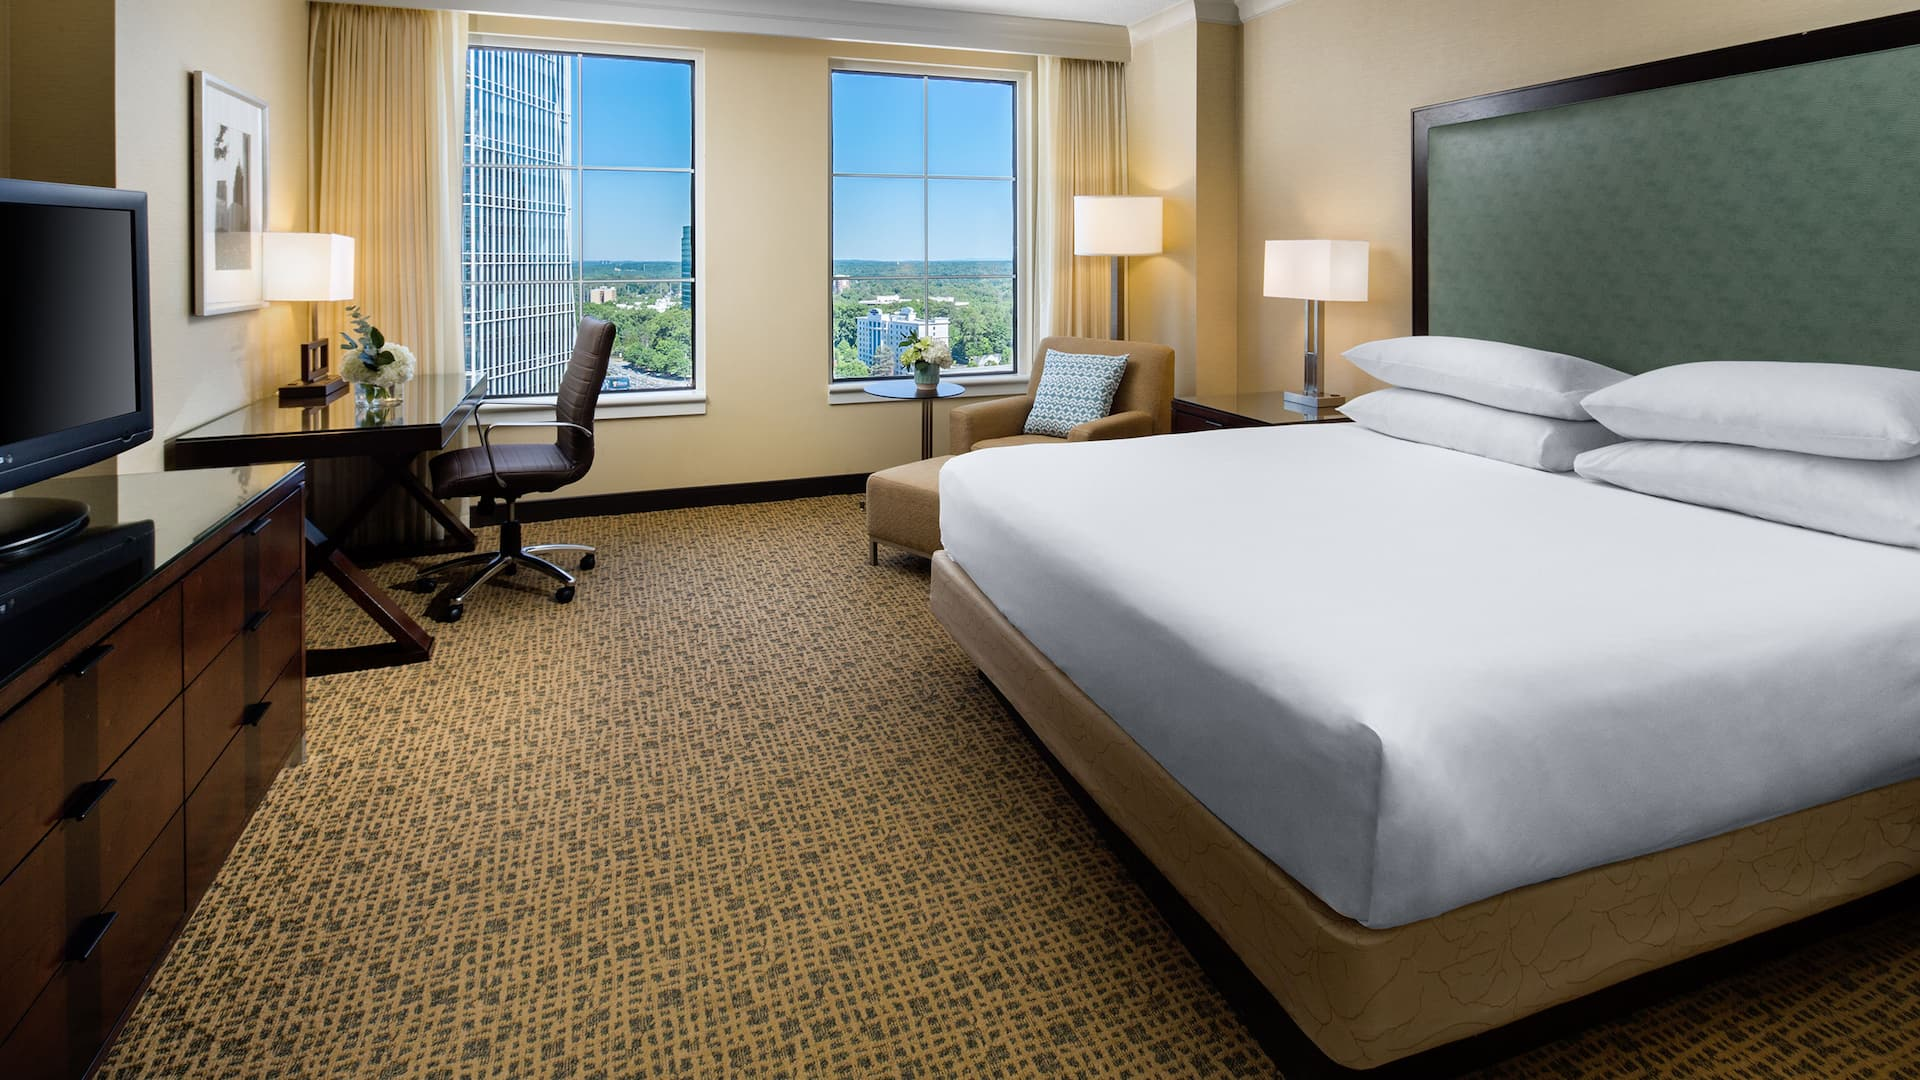 Room with King bed and desk Grand Hyatt Atlanta